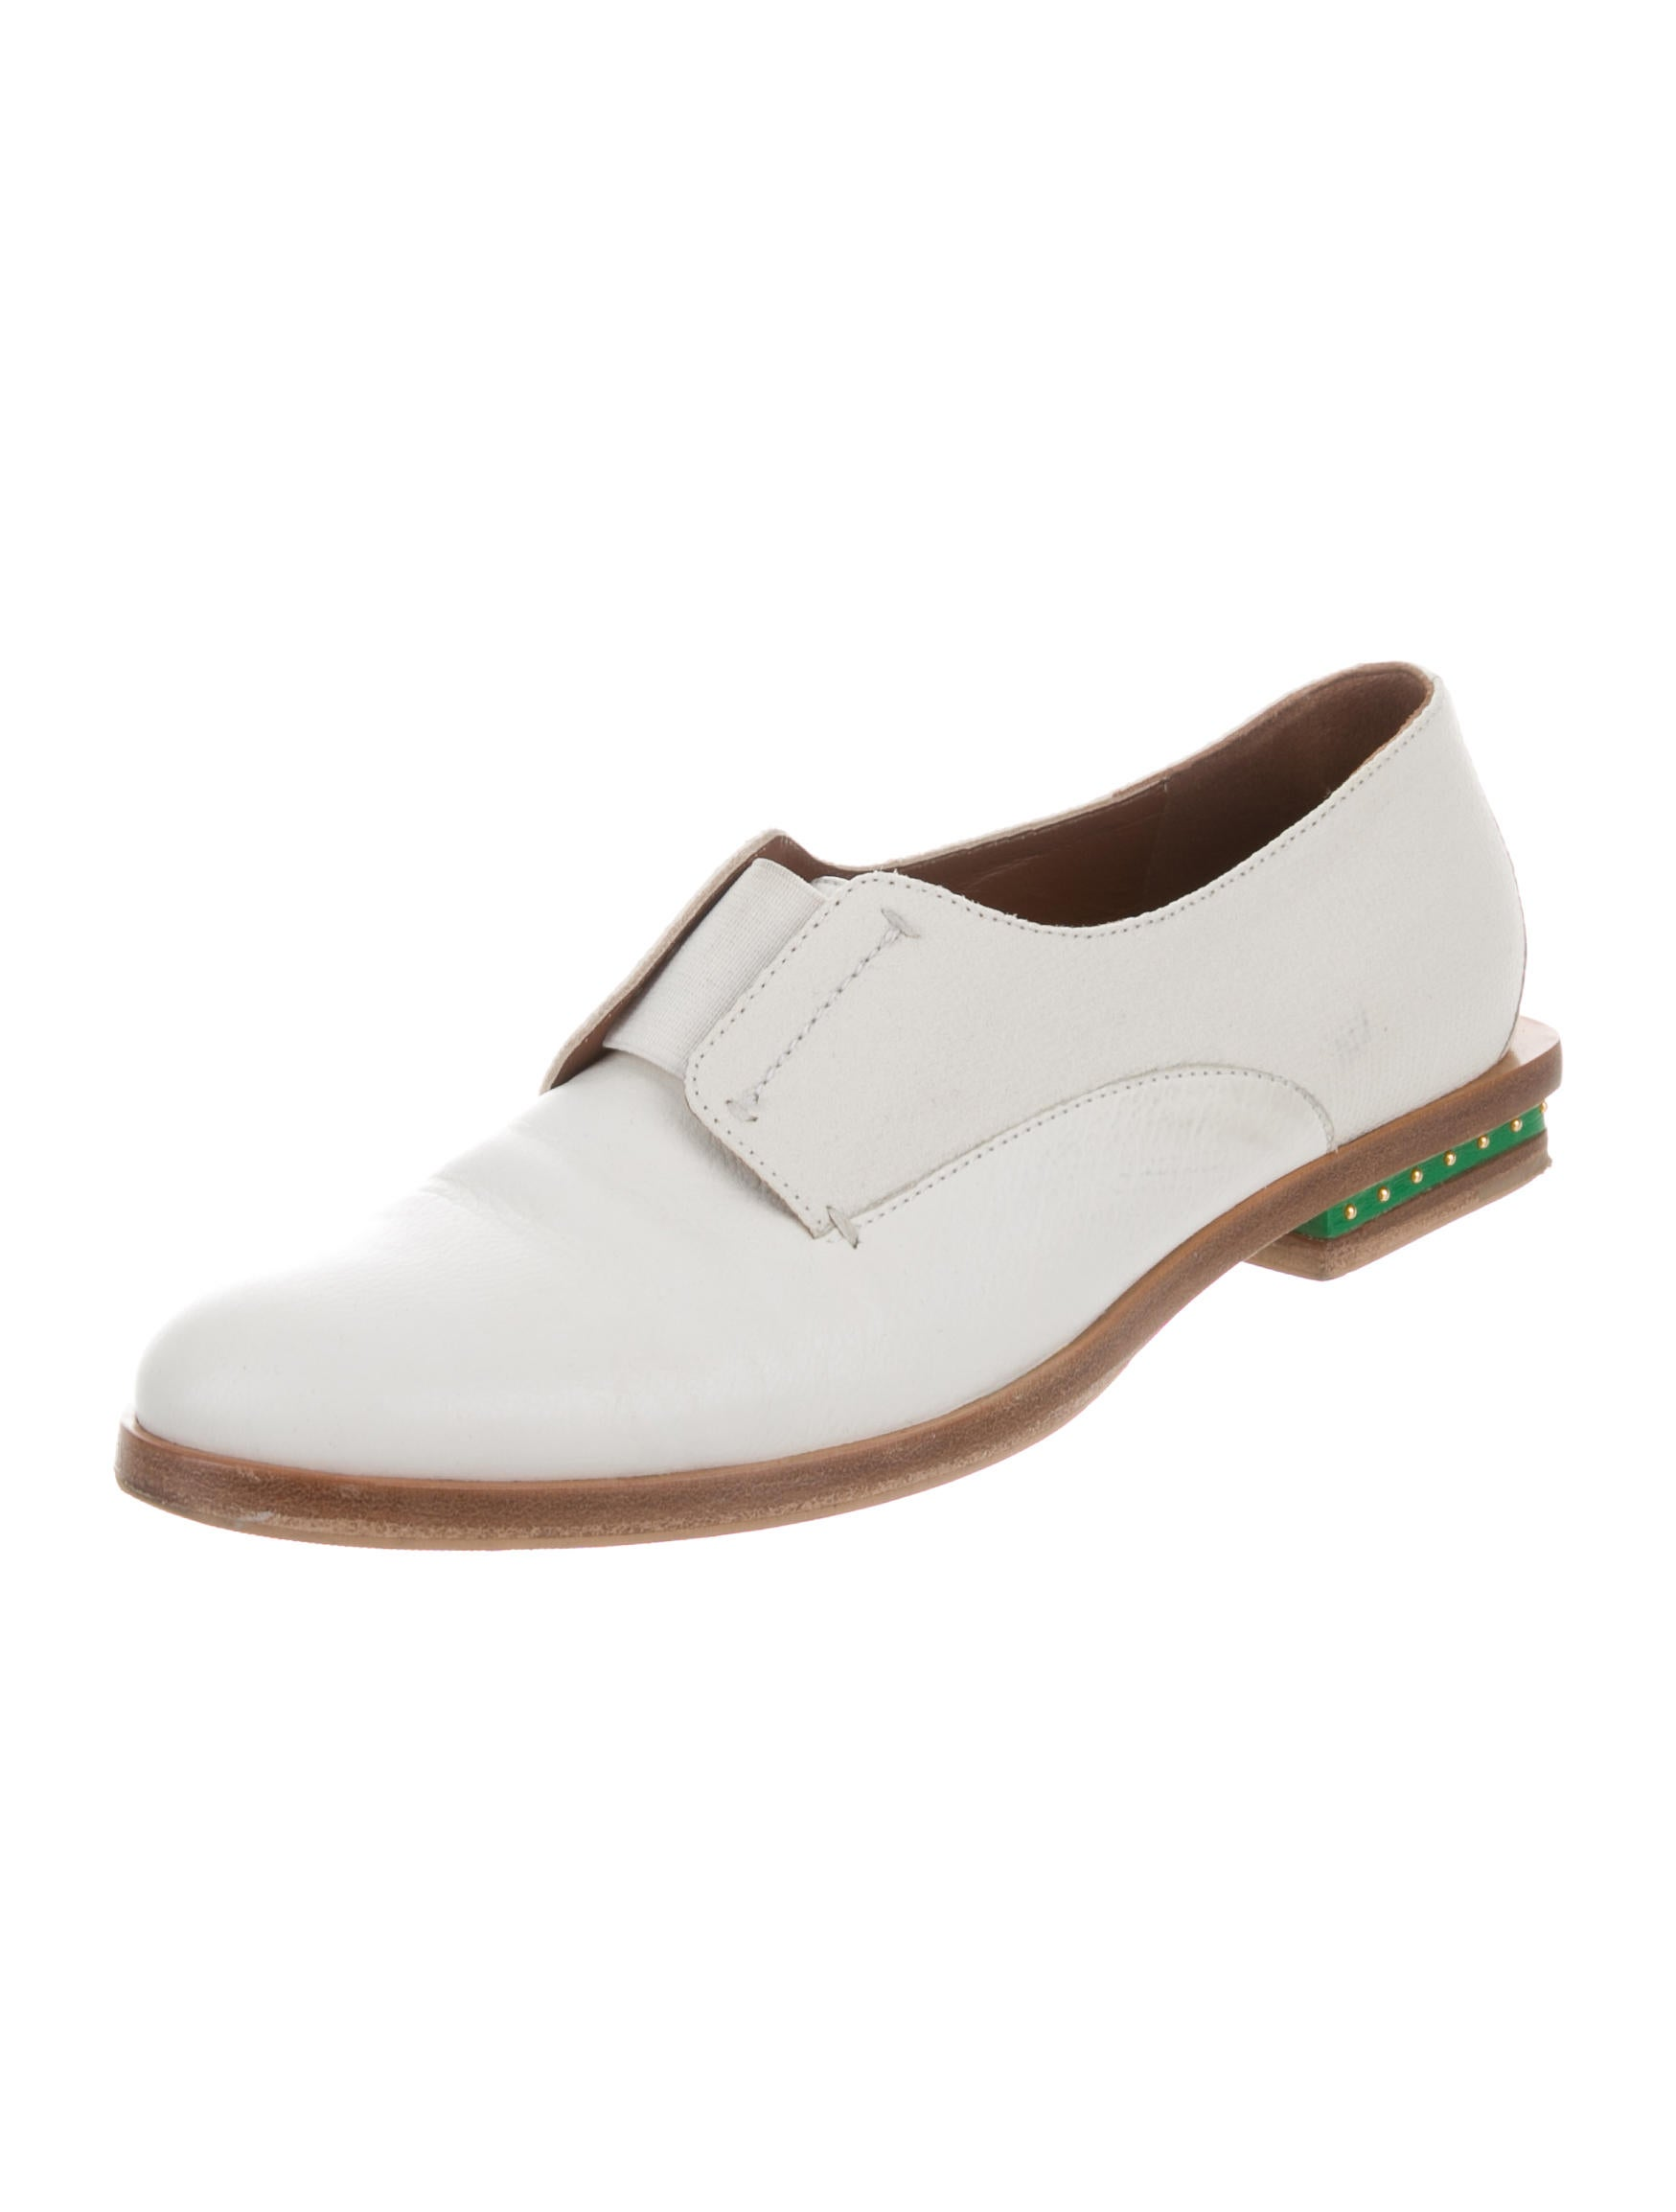 sale wiki Maiyet Leather Round-Toe Oxfords discount new free shipping countdown package HxehNjO